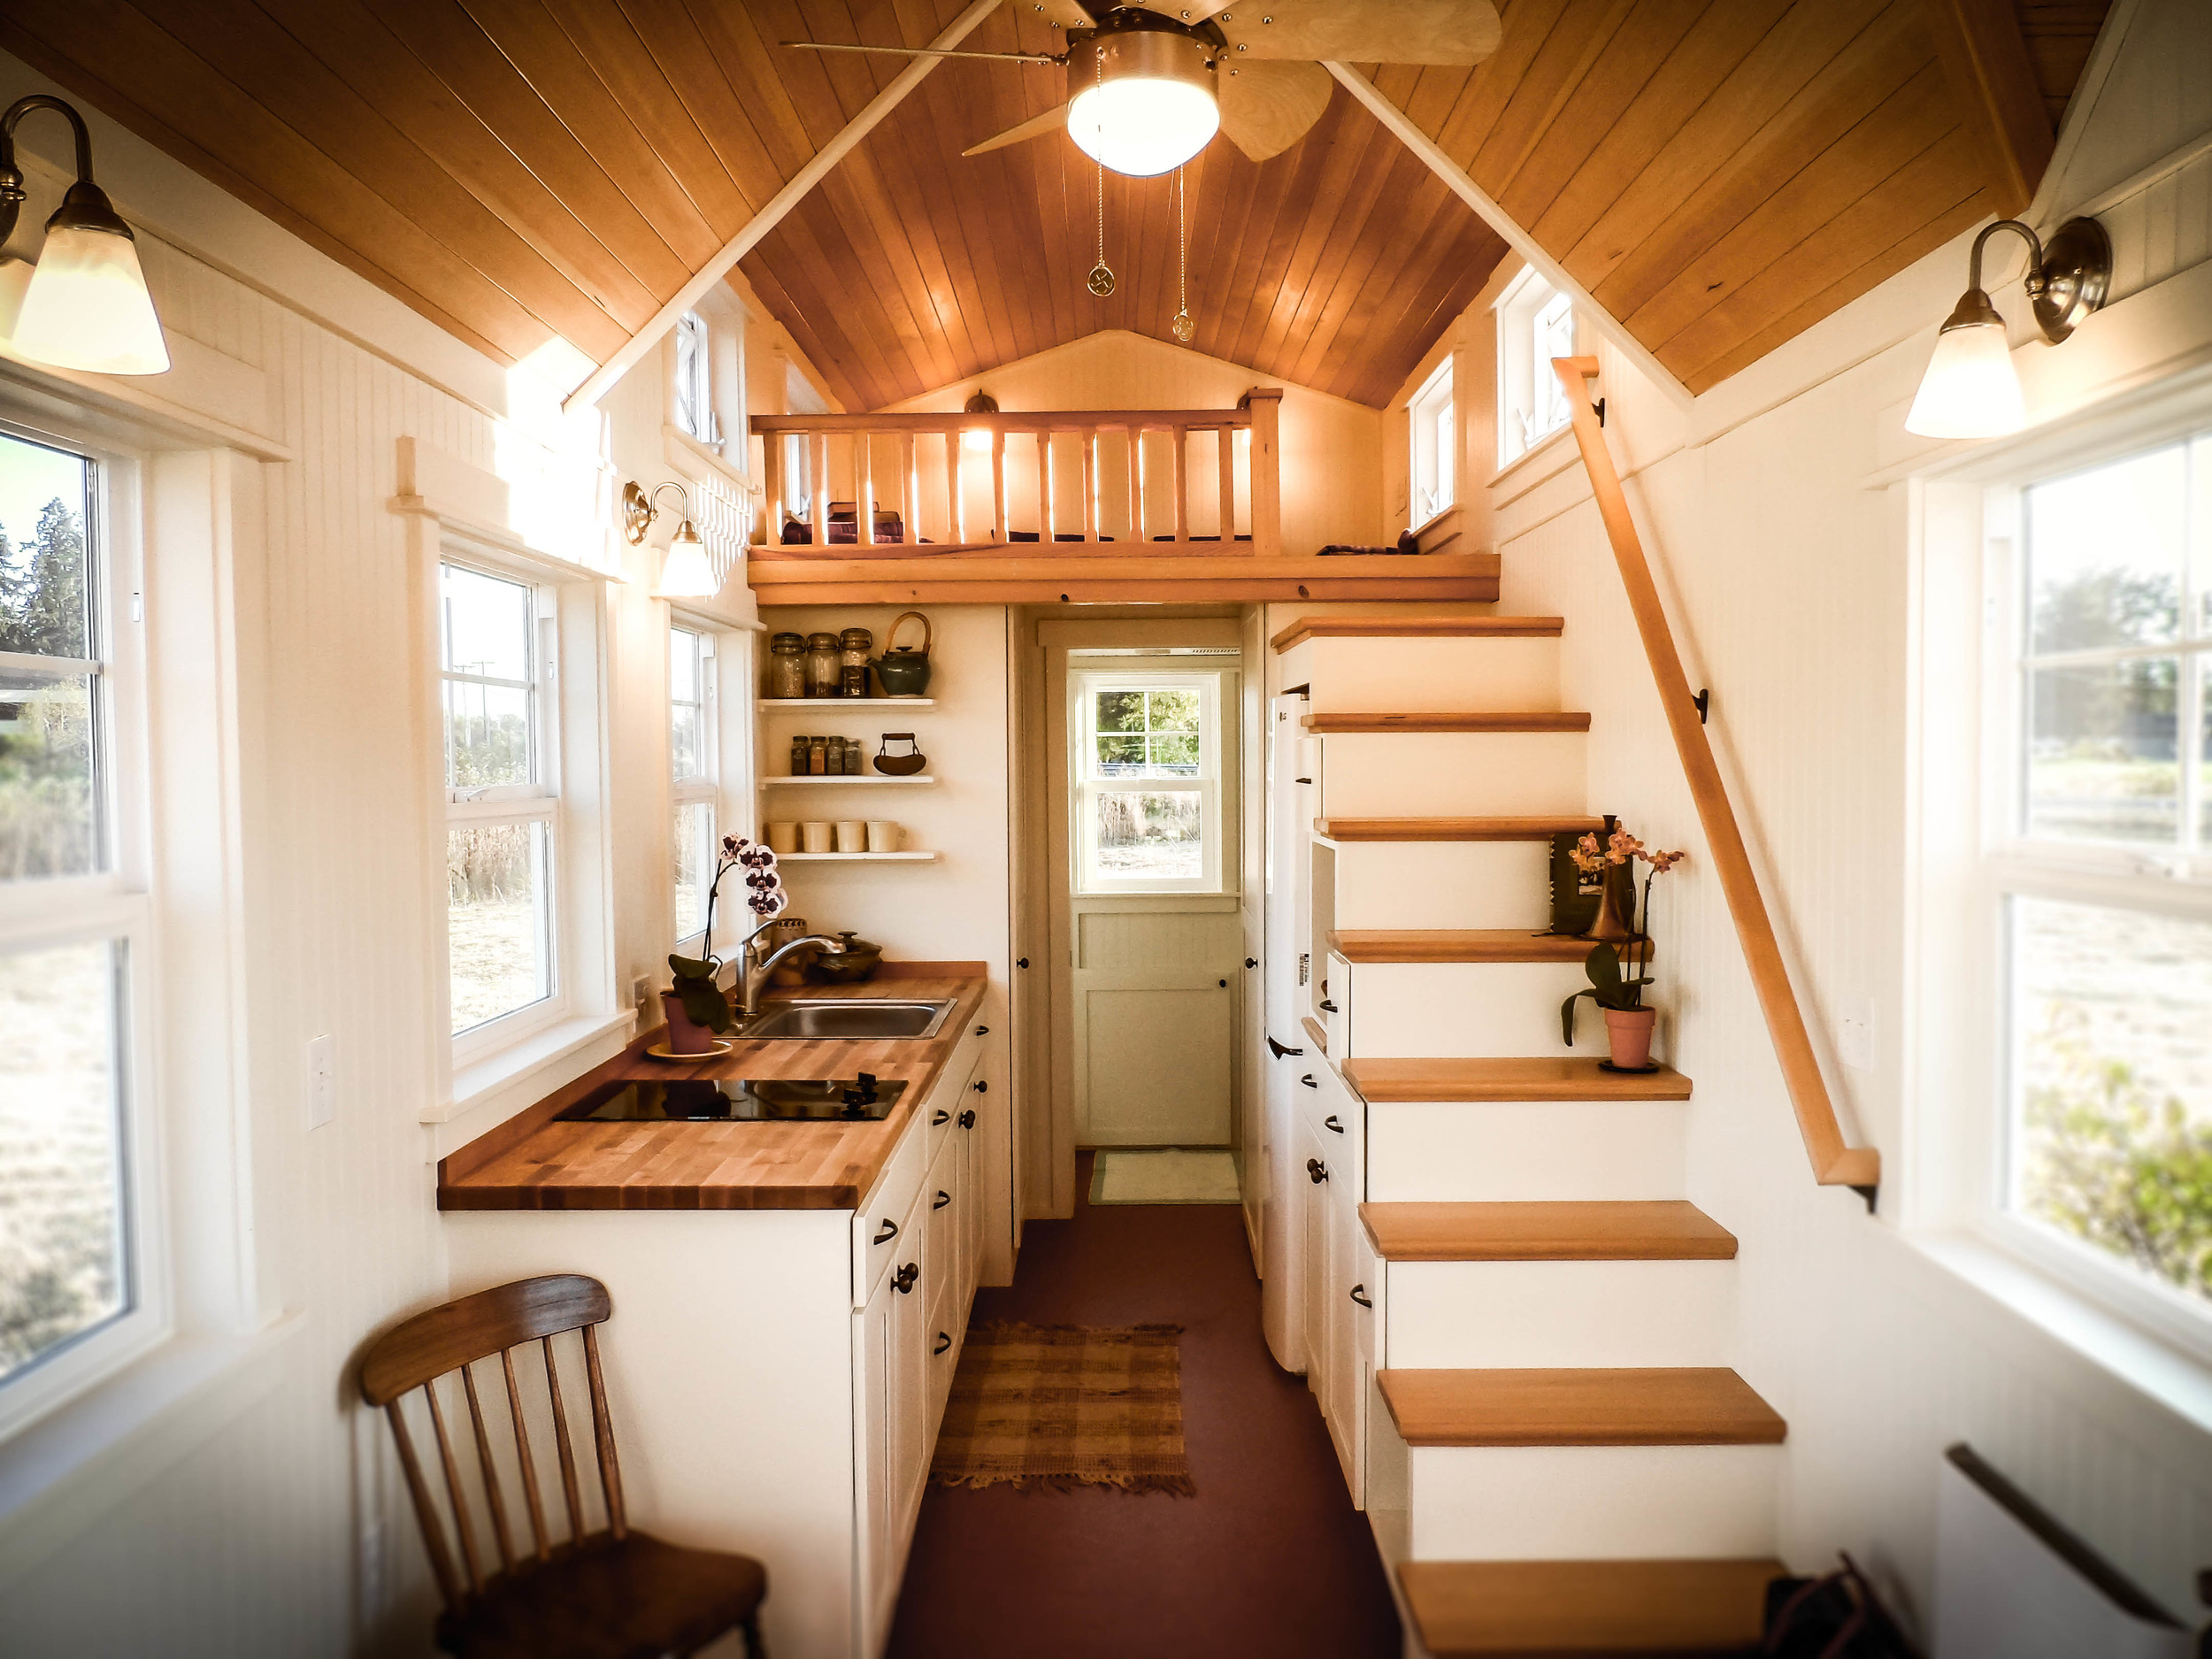 tiny house with loft bedroom and ladder